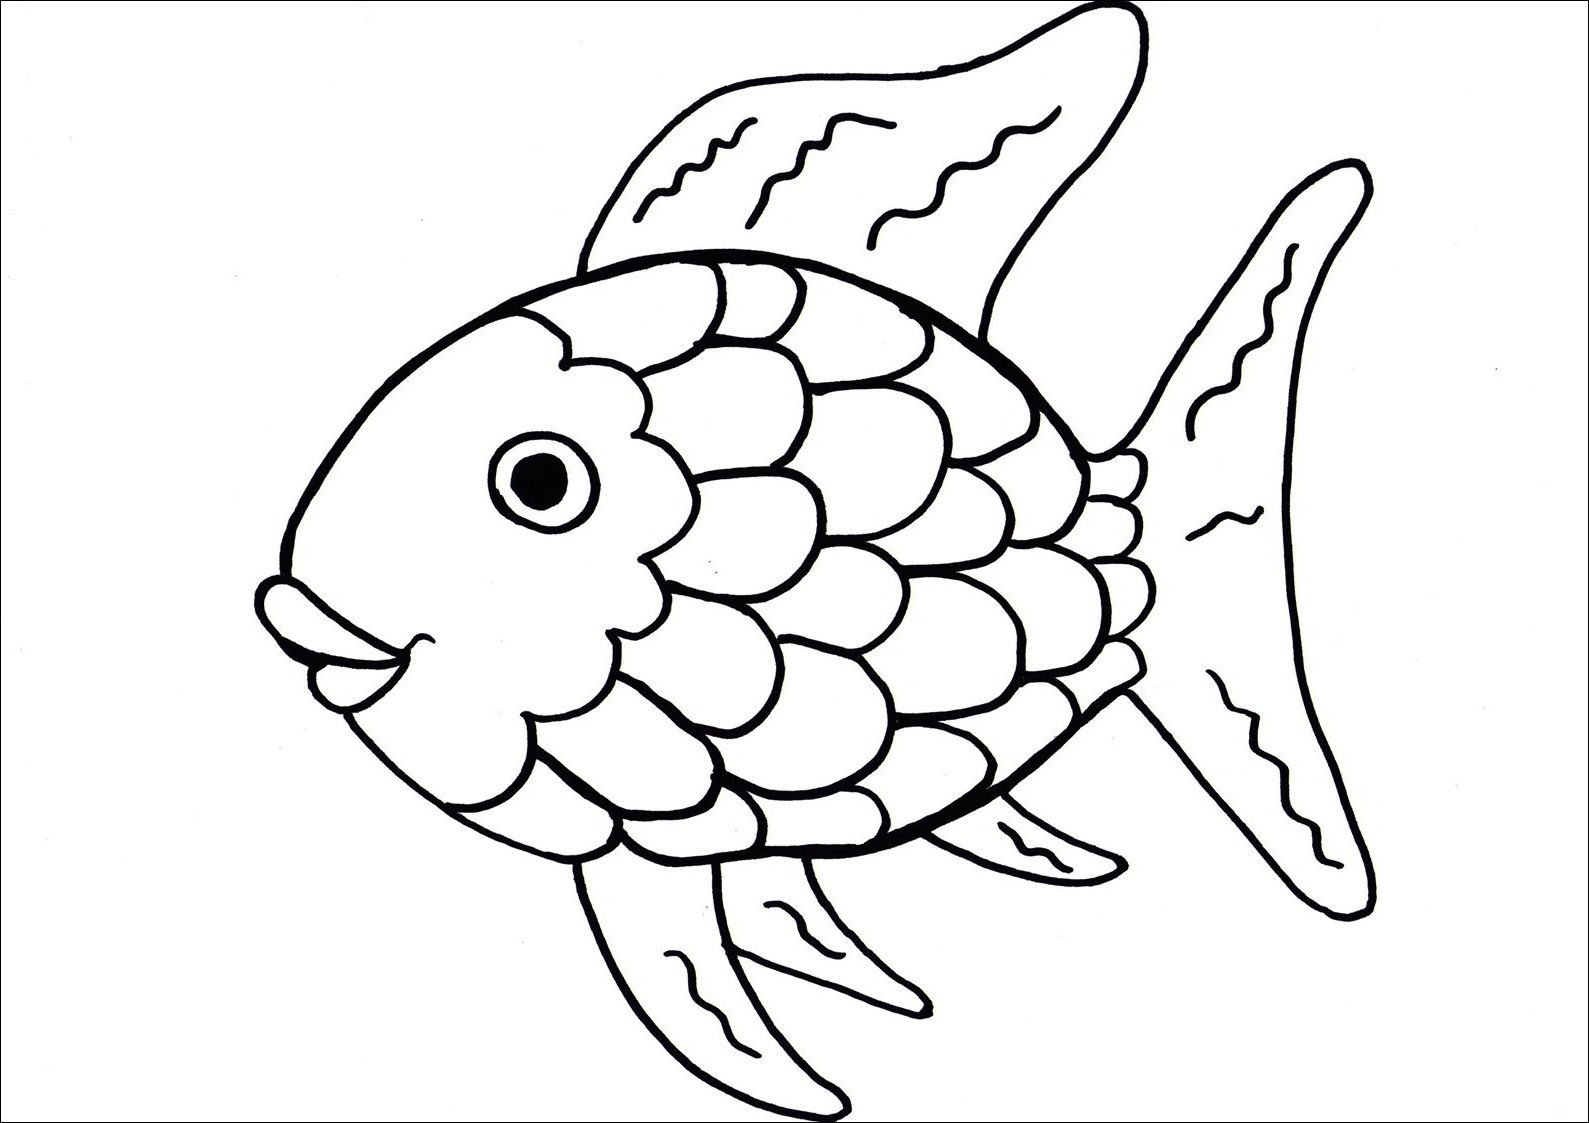 Fish Scales Thick With Strong Fish Fish coloring page